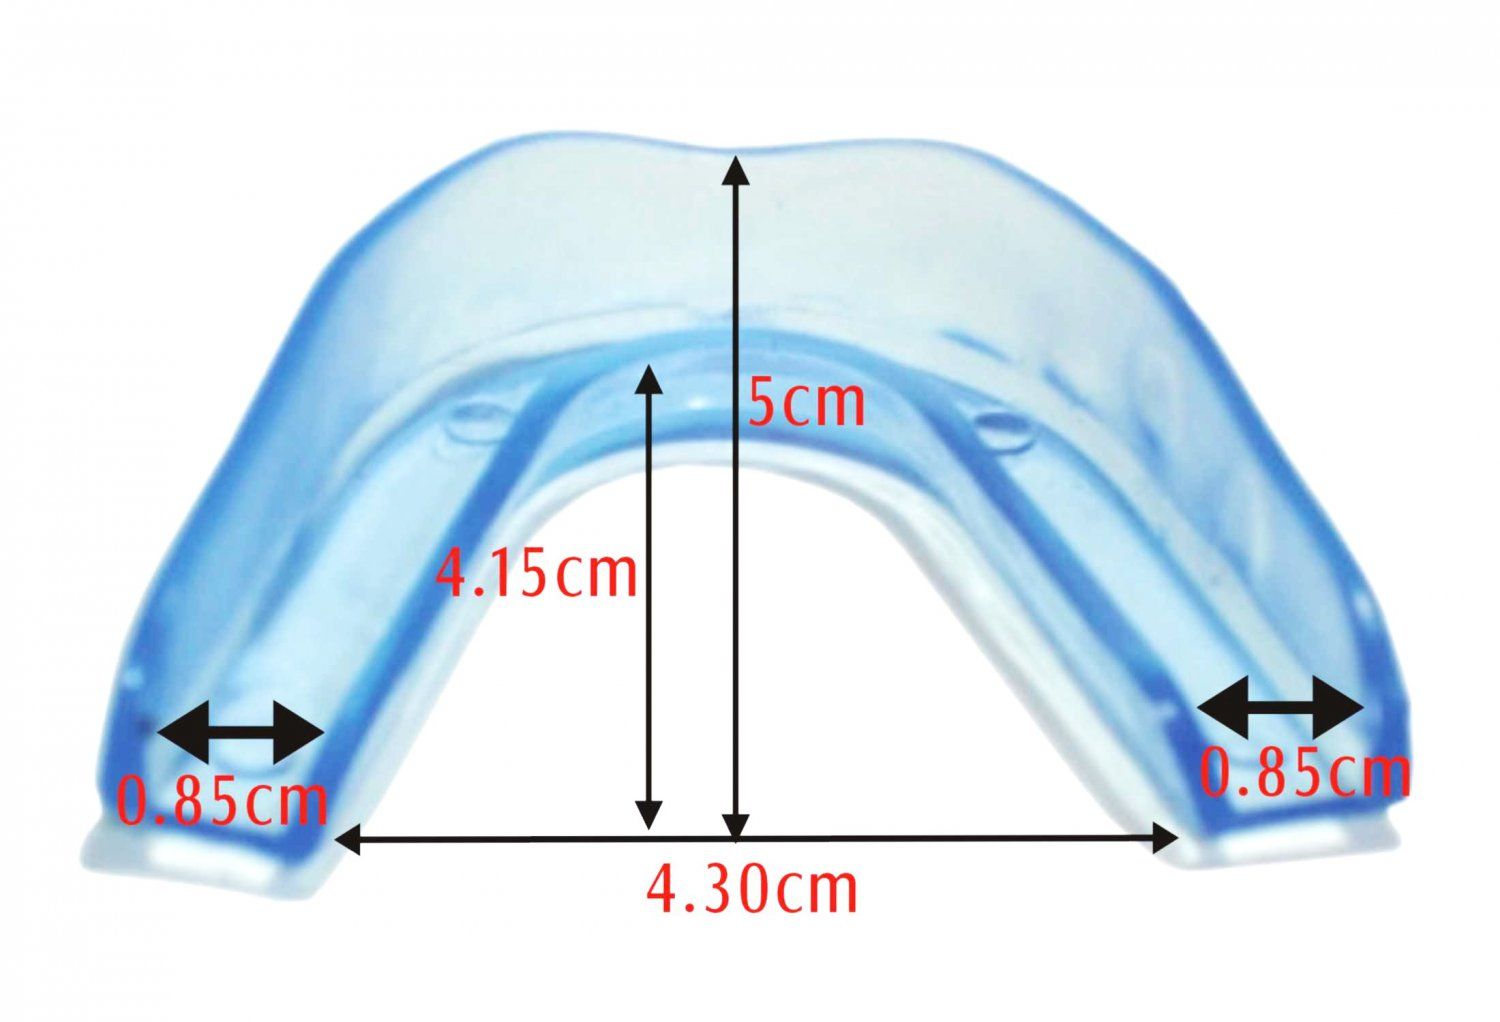 X 2 Night Teeth Grinding Mouth Guards Stop Bruxism Dental Protect Snoring TMJ Sleep Aid New